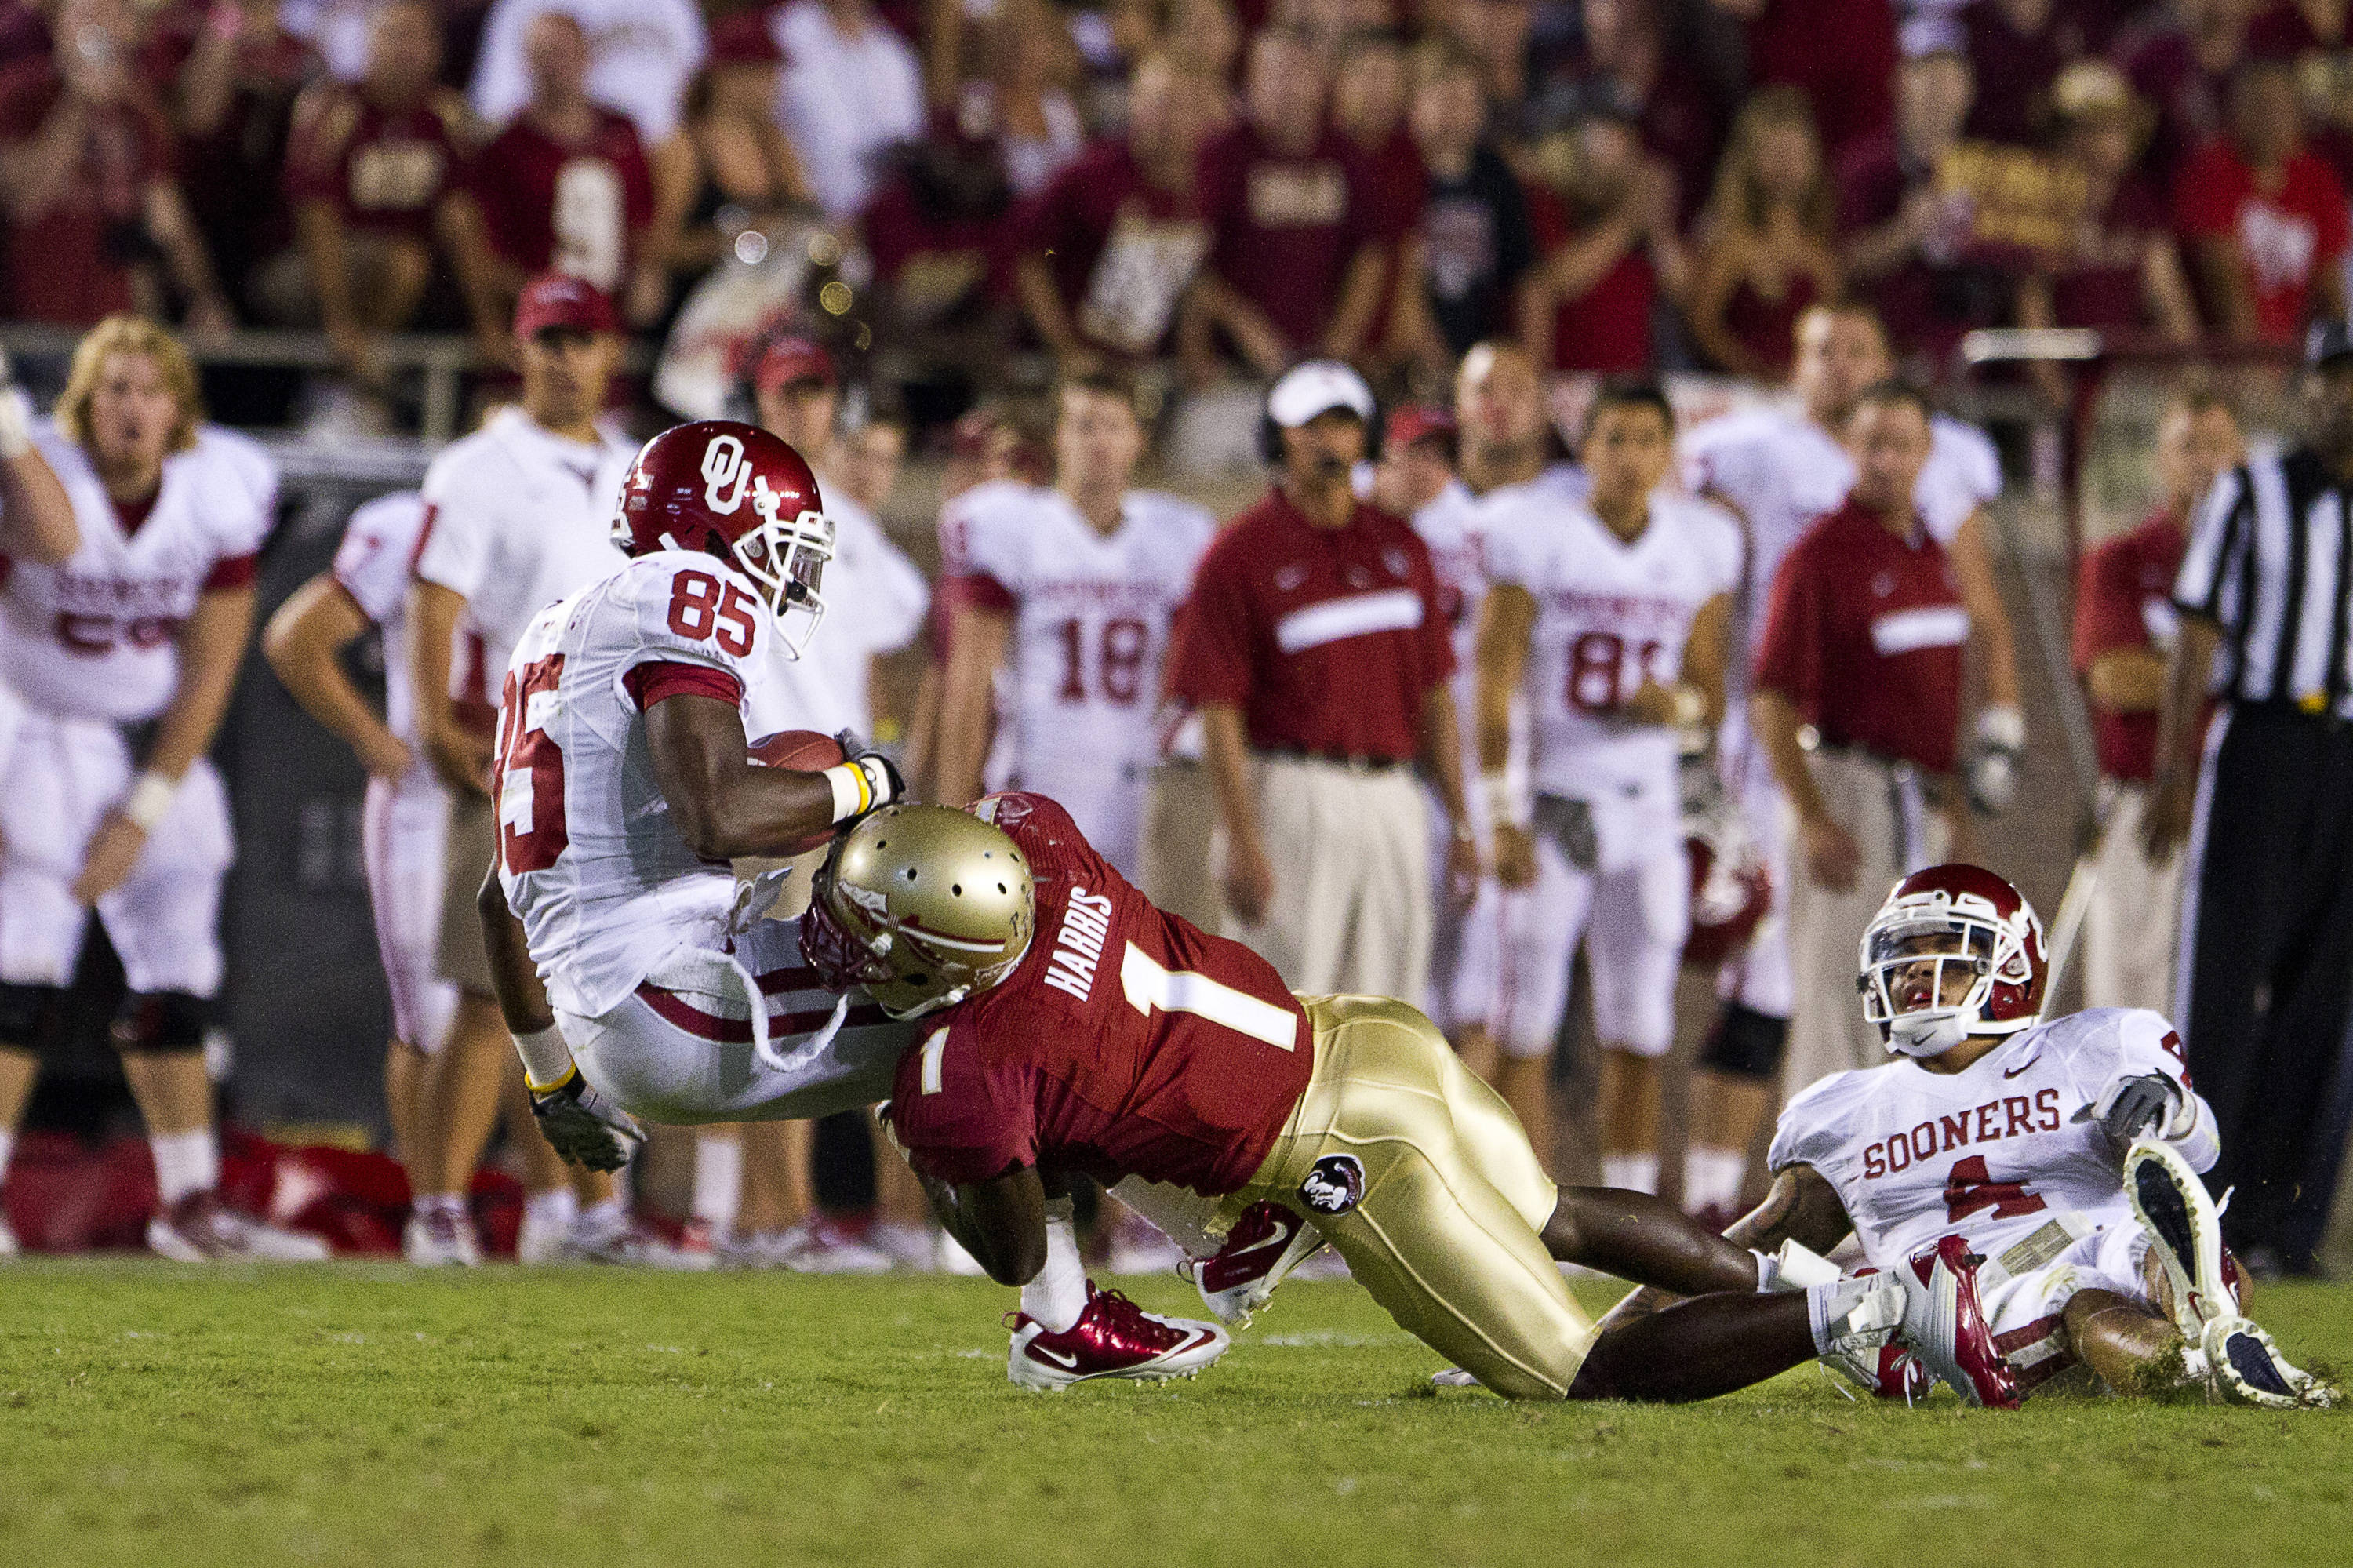 Mike Harris (1) takes down a Oklahoma ball carrier during the game against Oklahoma on September 17, 2011.